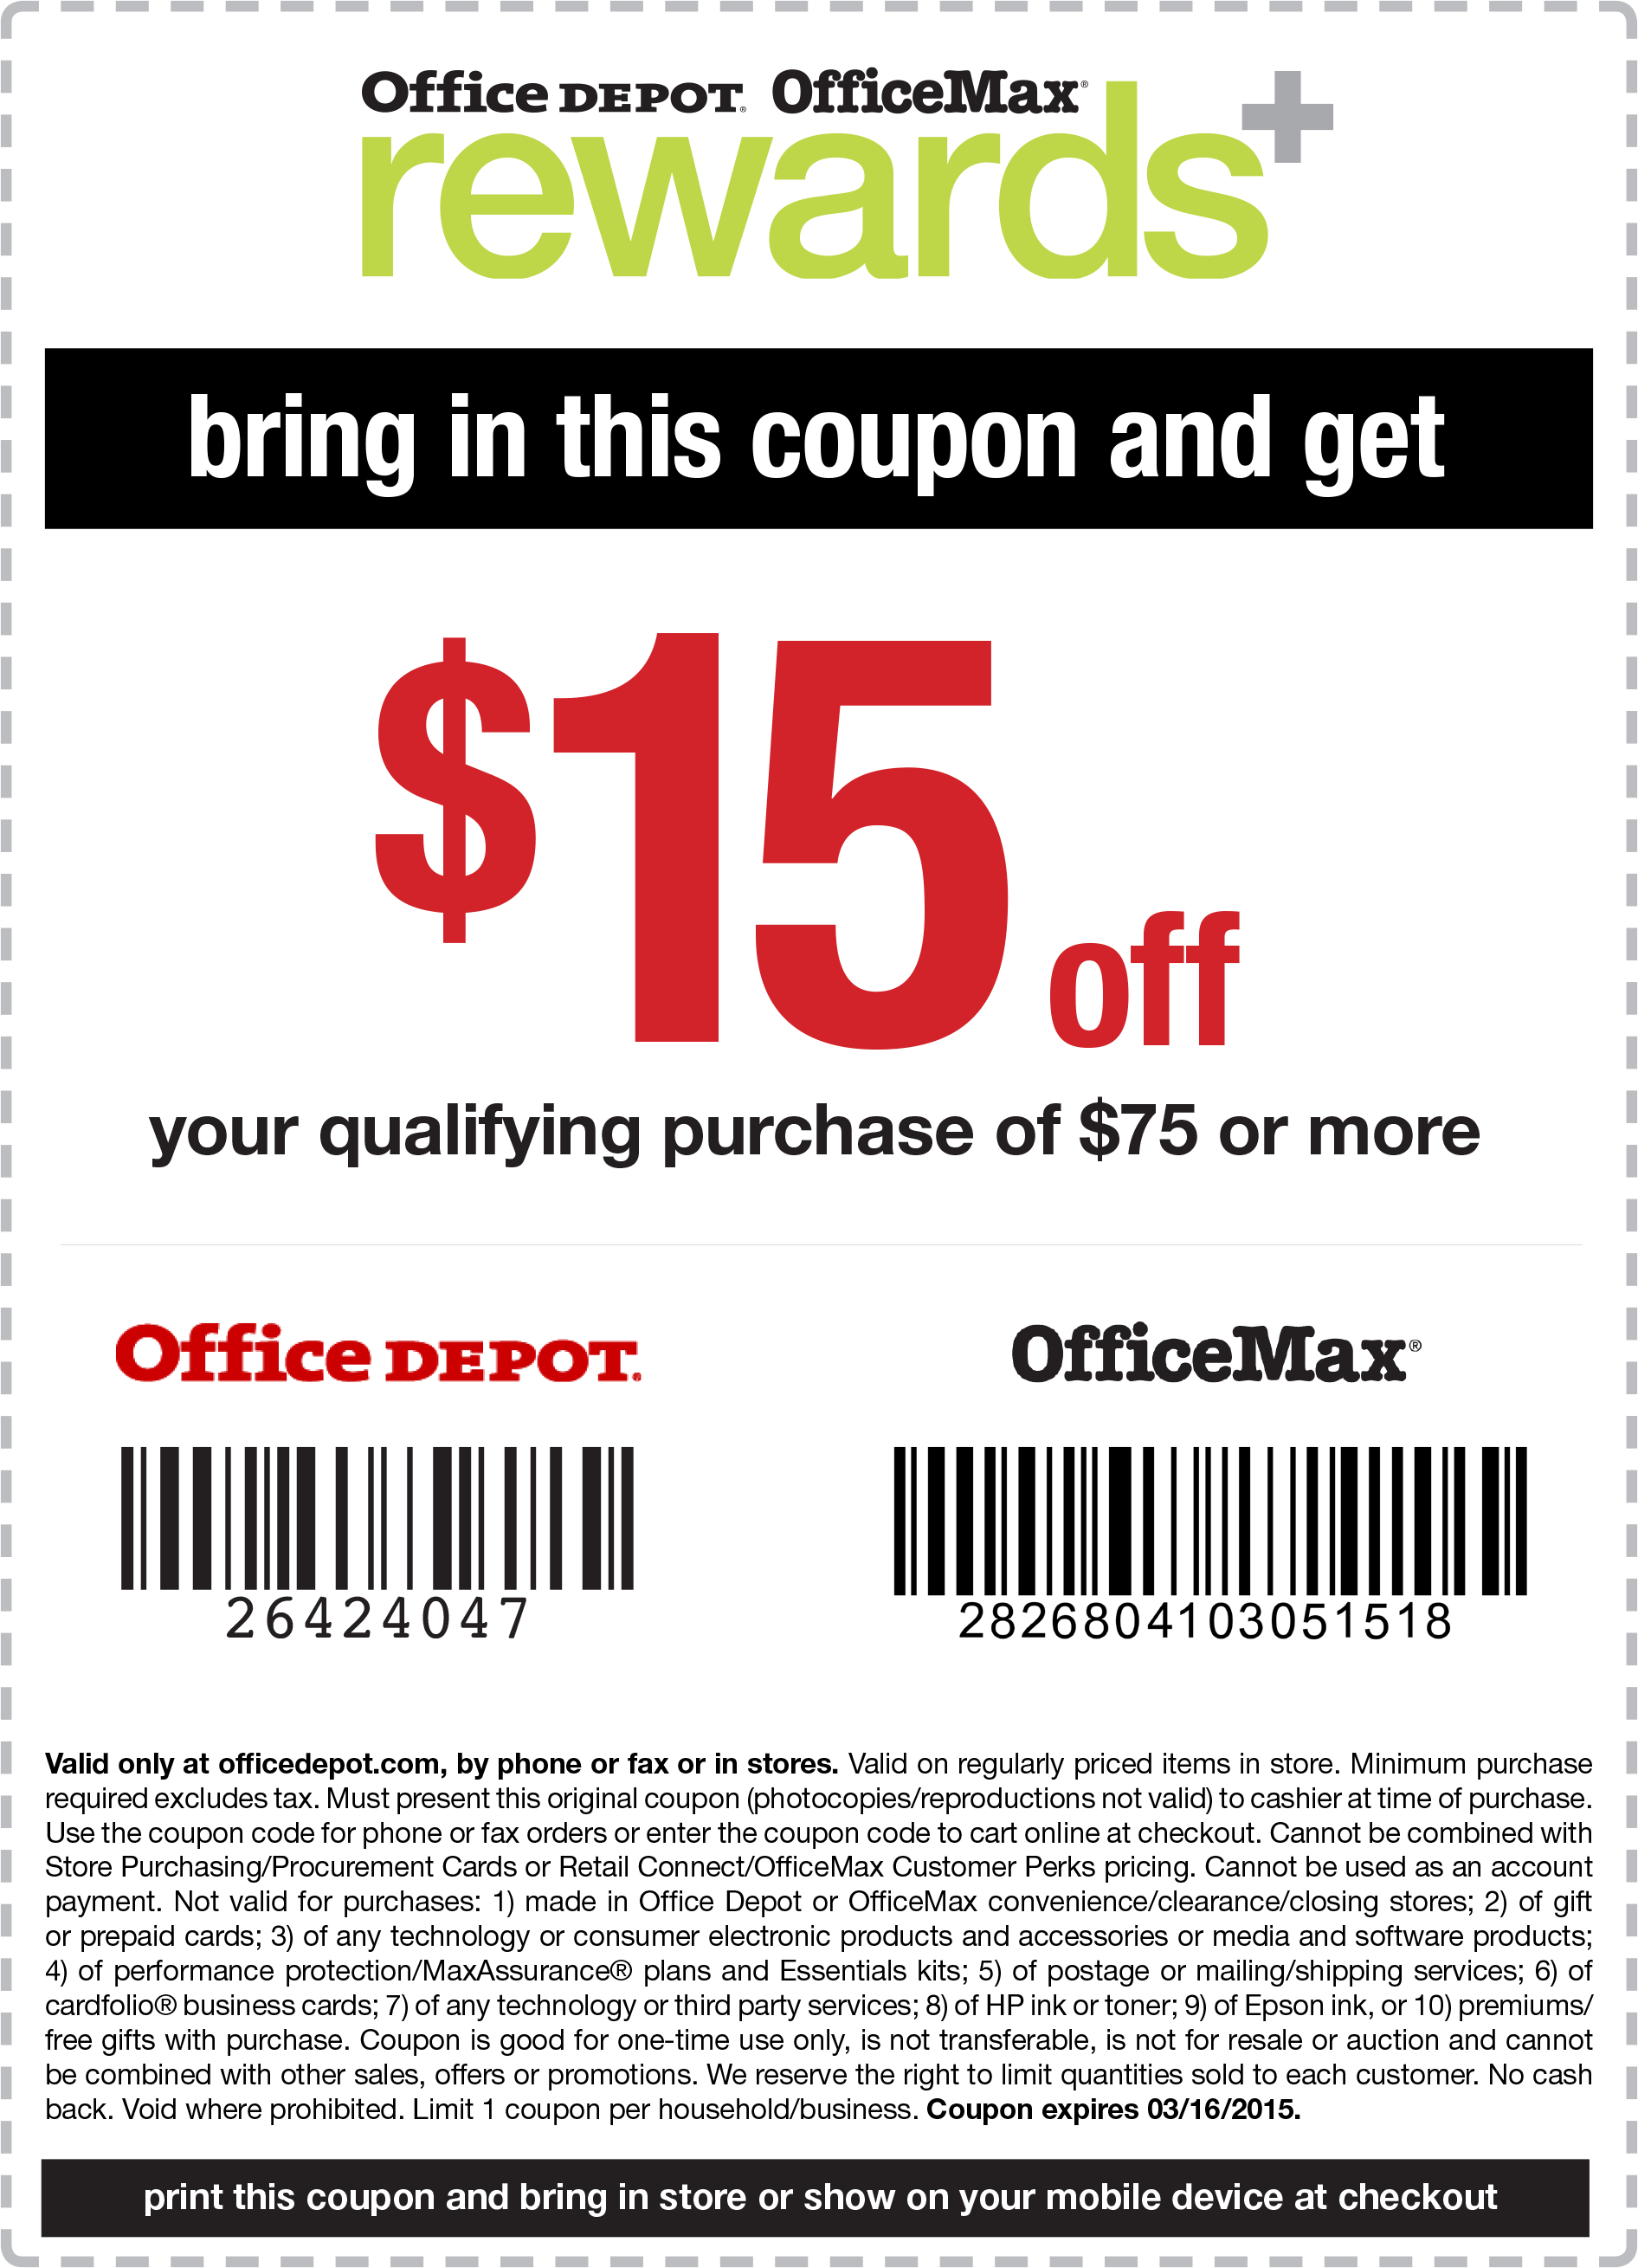 OfficeMax Coupon March 2017 $15 off $75 at Office Depot & OfficeMax, or online via promo code 26424047